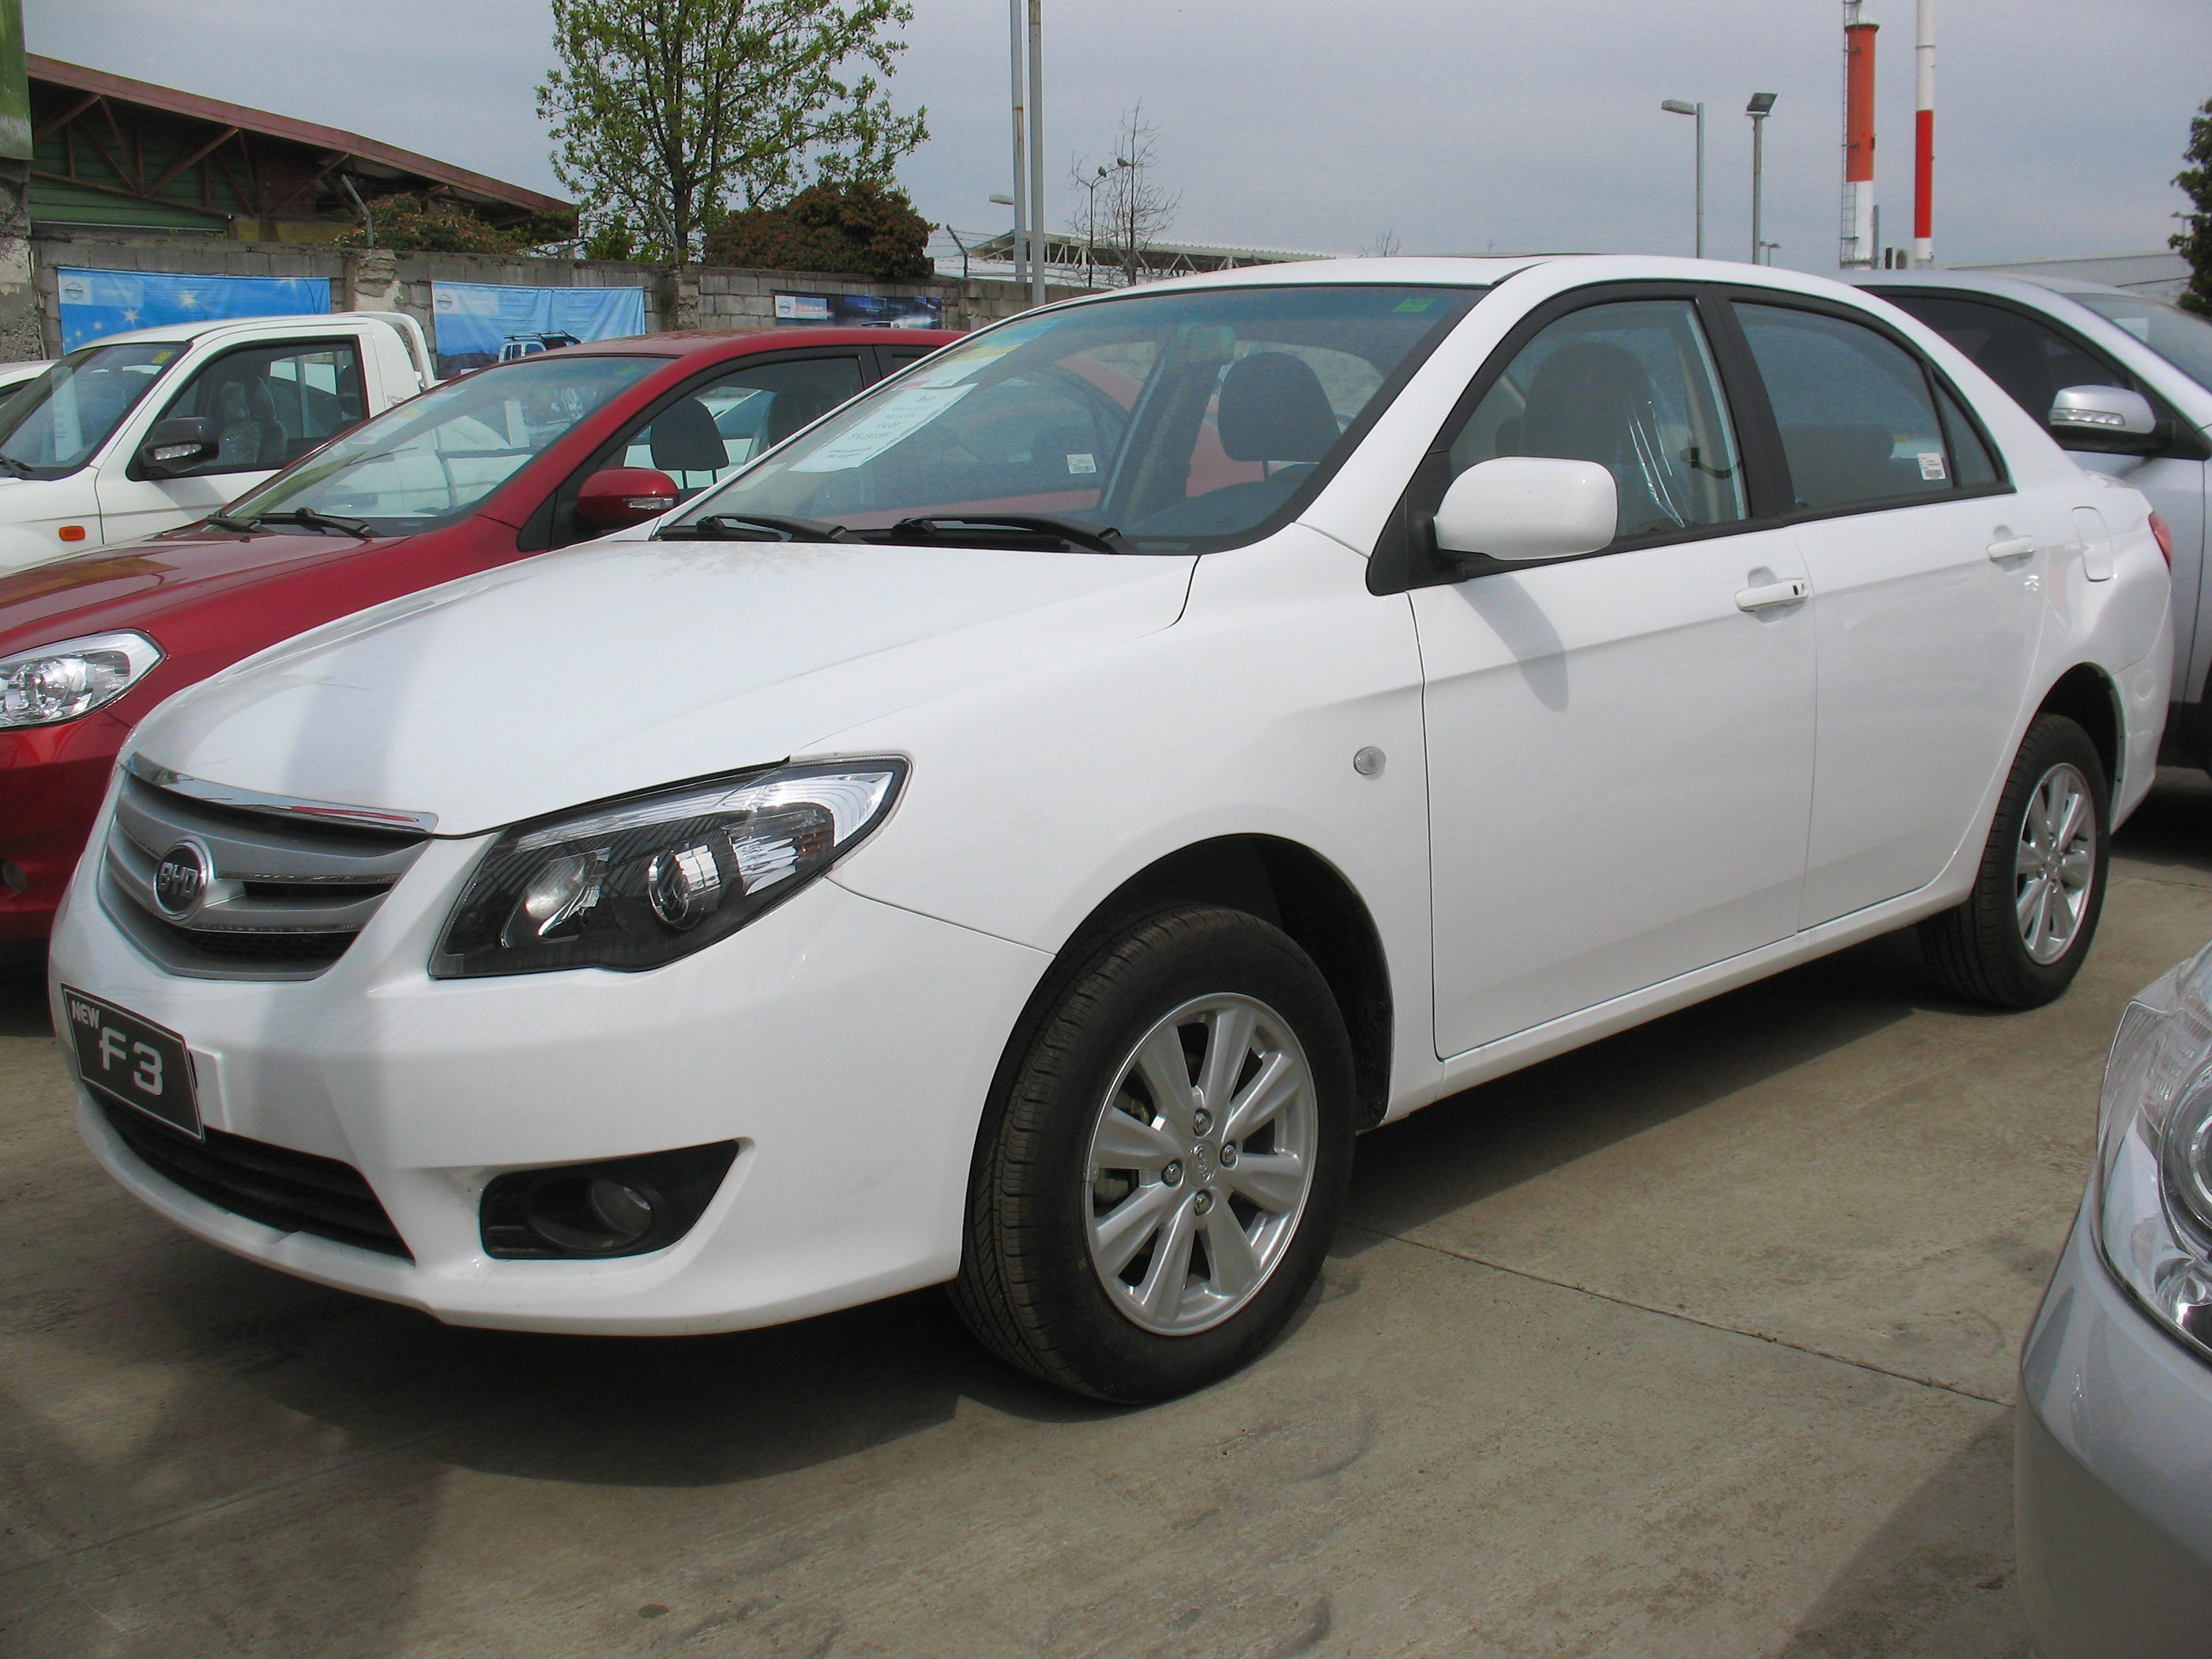 2018 BYD F3 GLXI Price in UAE, Specs & Review in Dubai ...